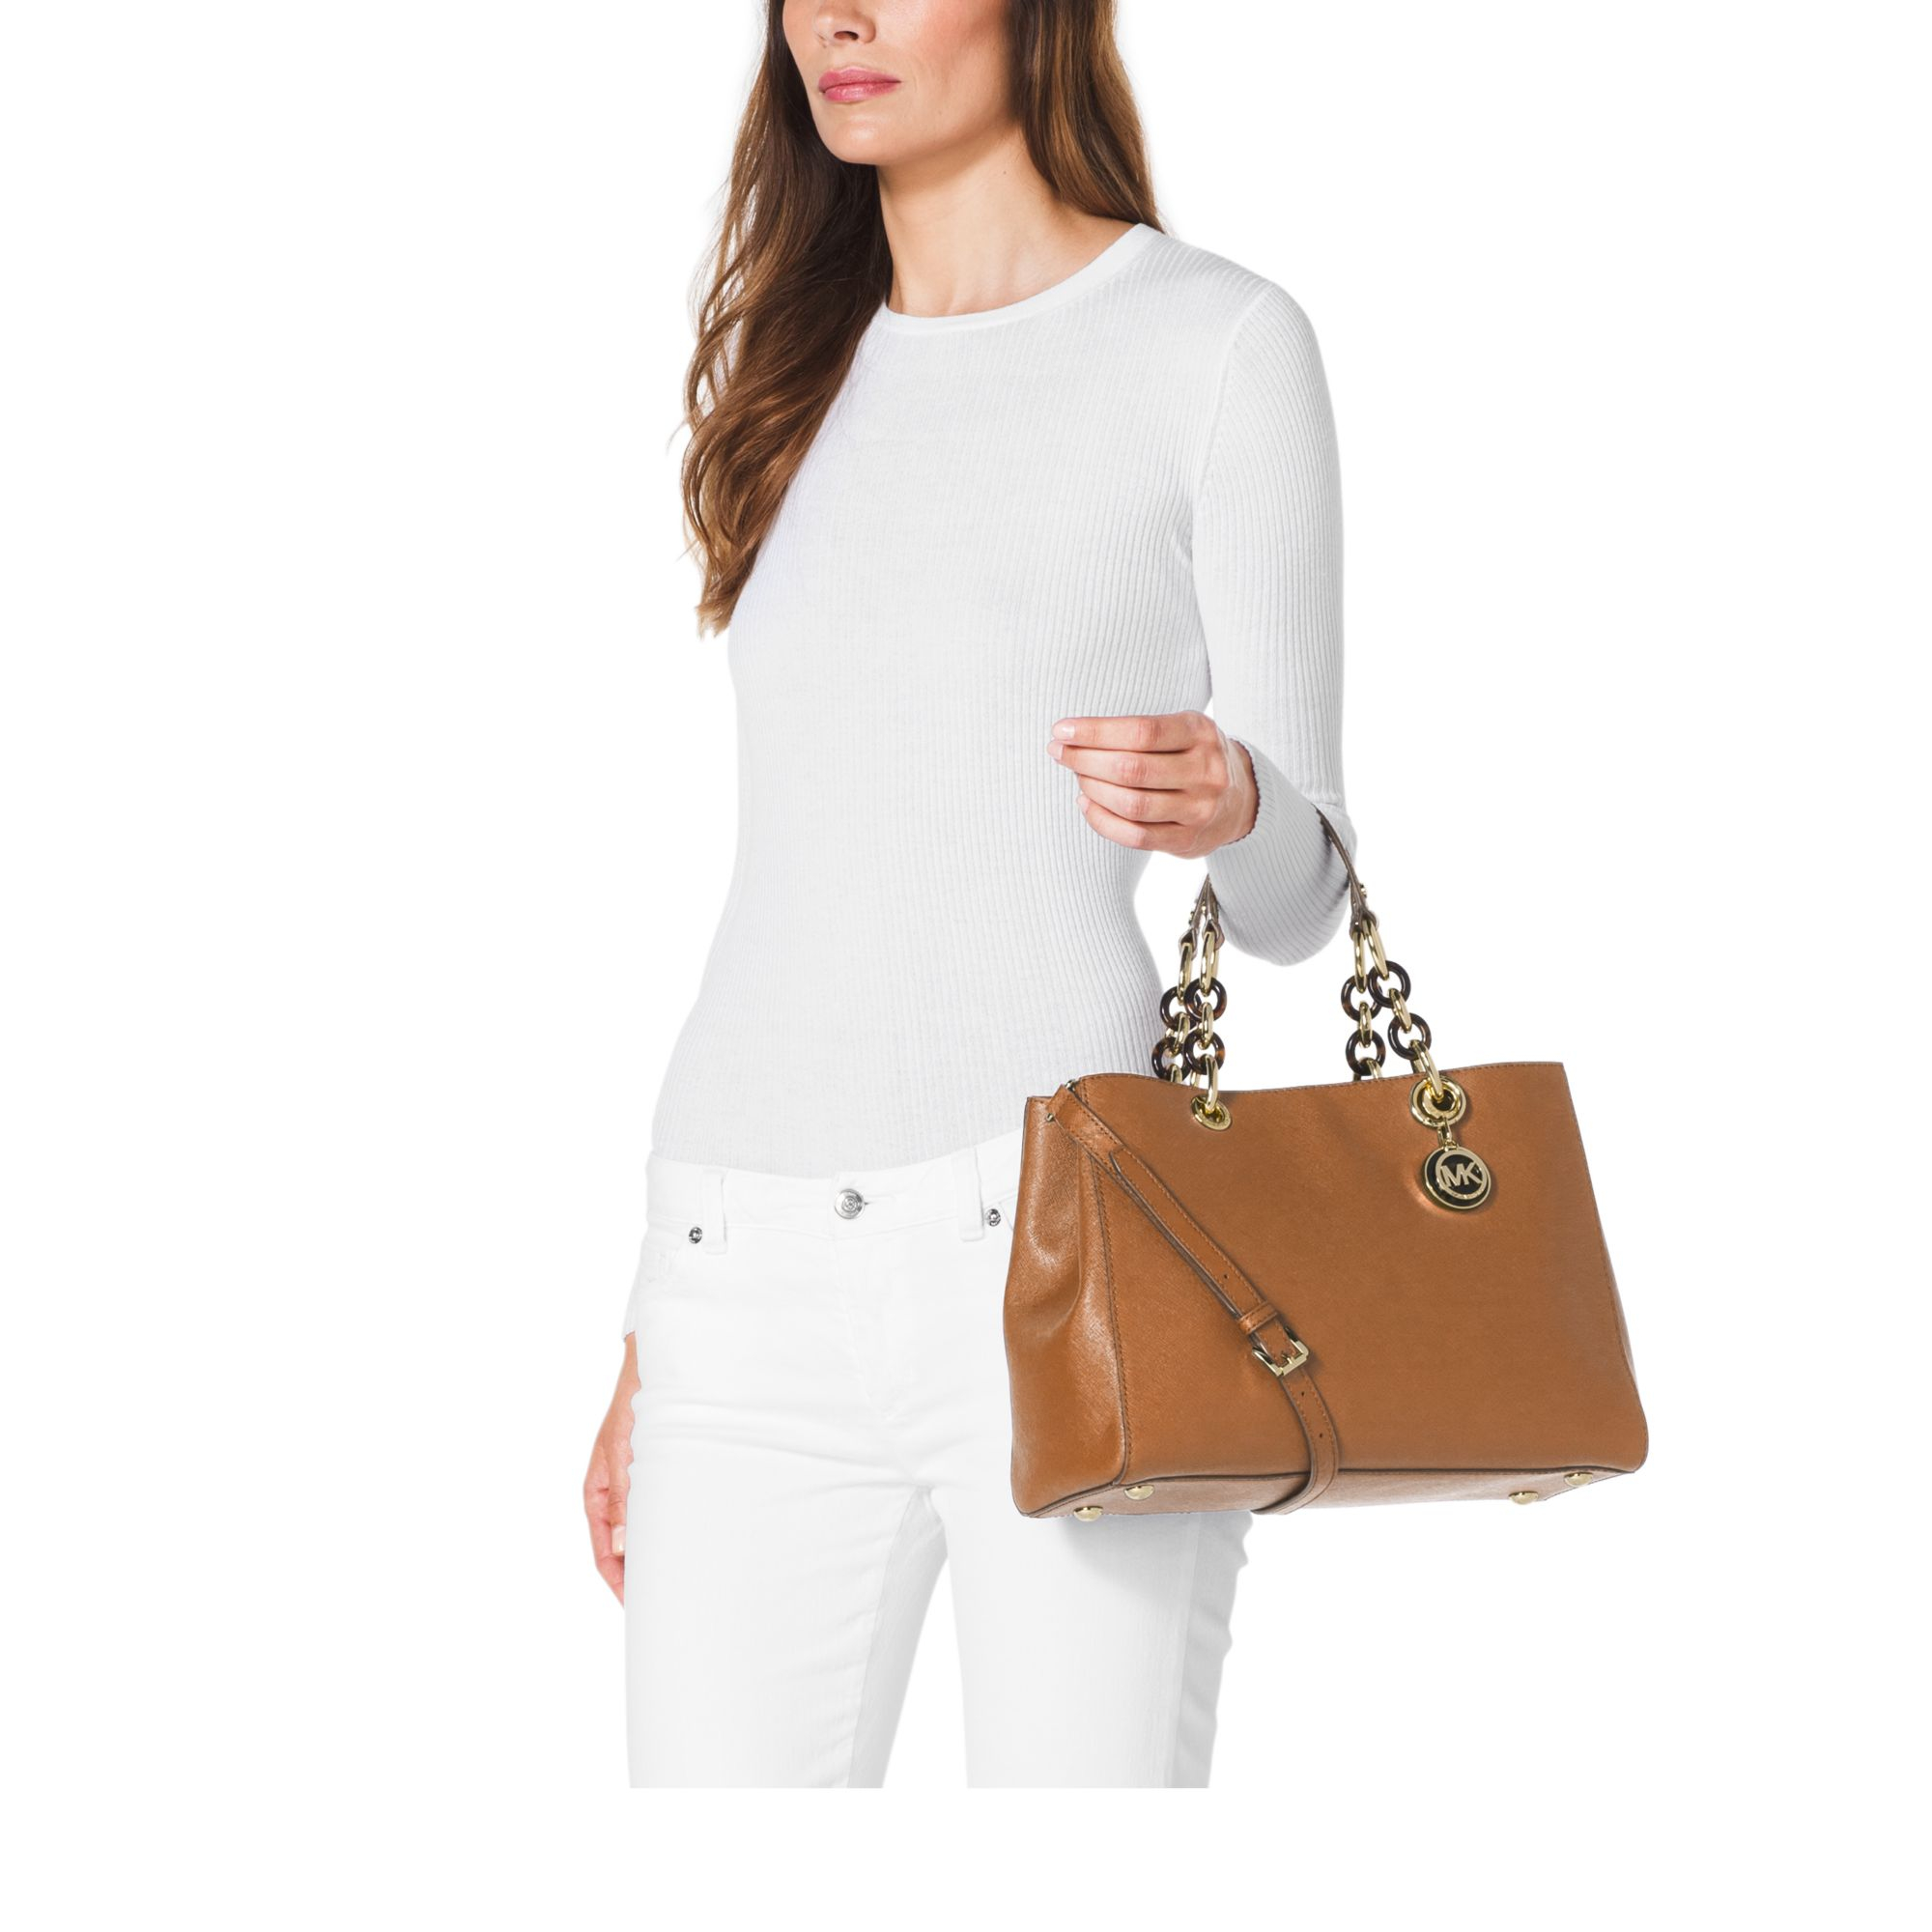 Michael Kors Cindy Laukku : Michael kors cynthia medium leather satchel in brown lyst